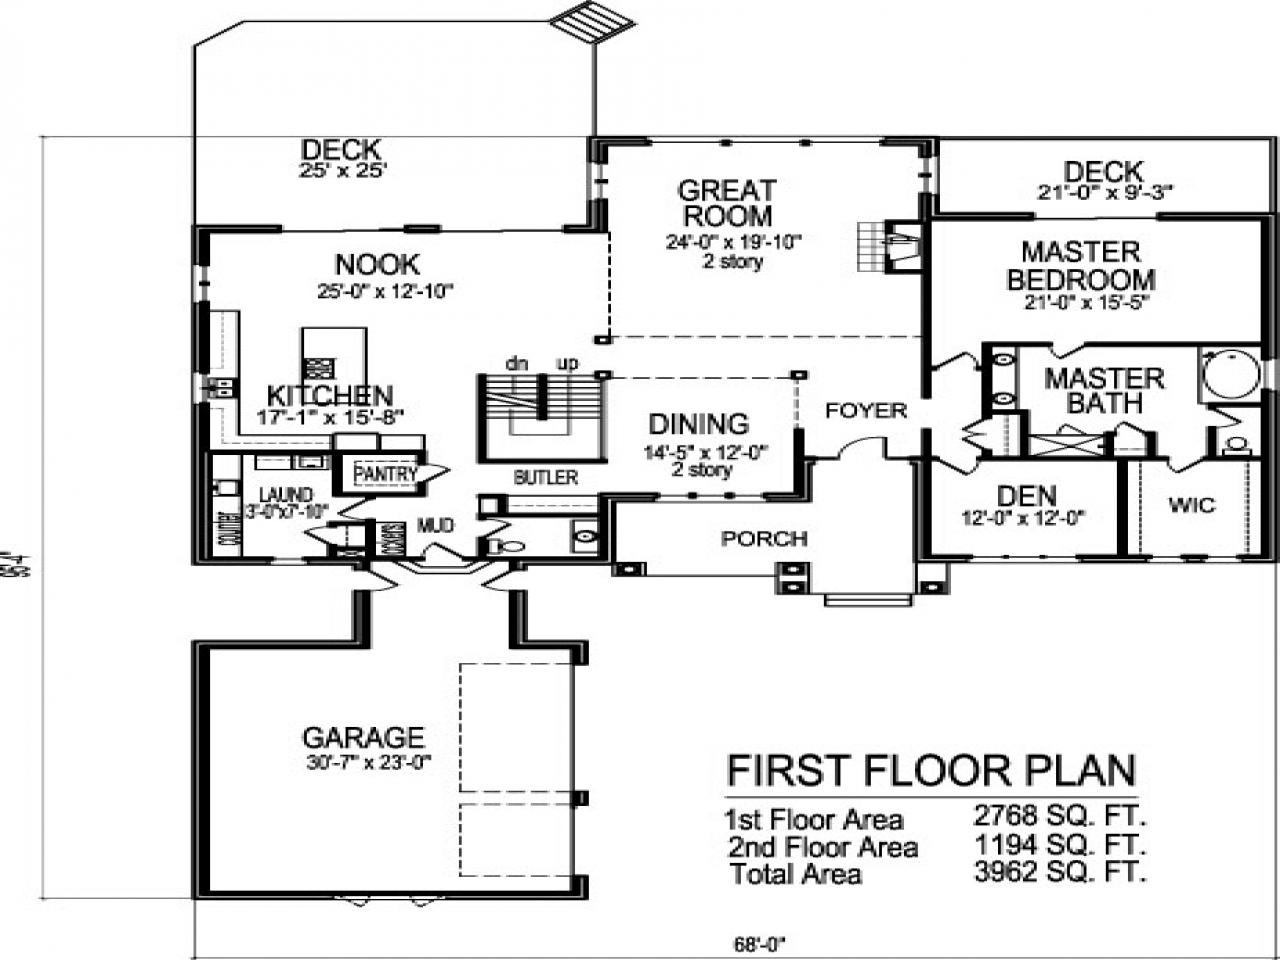 3 story brownstone floor plans 2 story open floor house for 3 story house floor plans